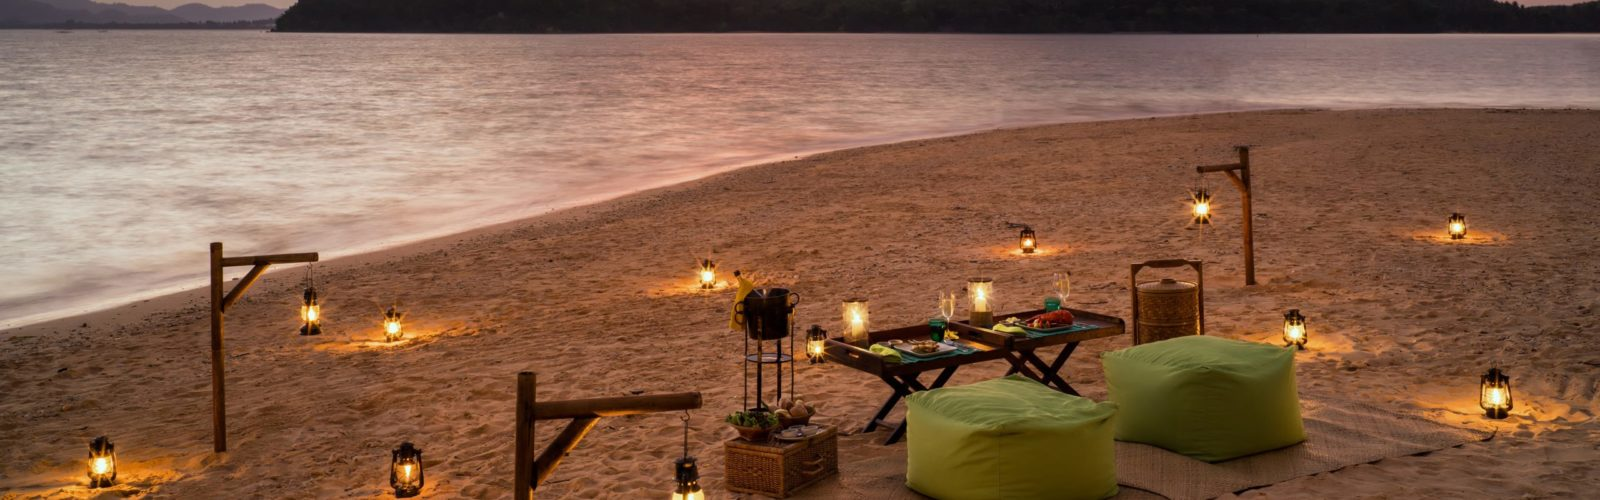 Six Senses Yao Noi beach at sunset, Thailand